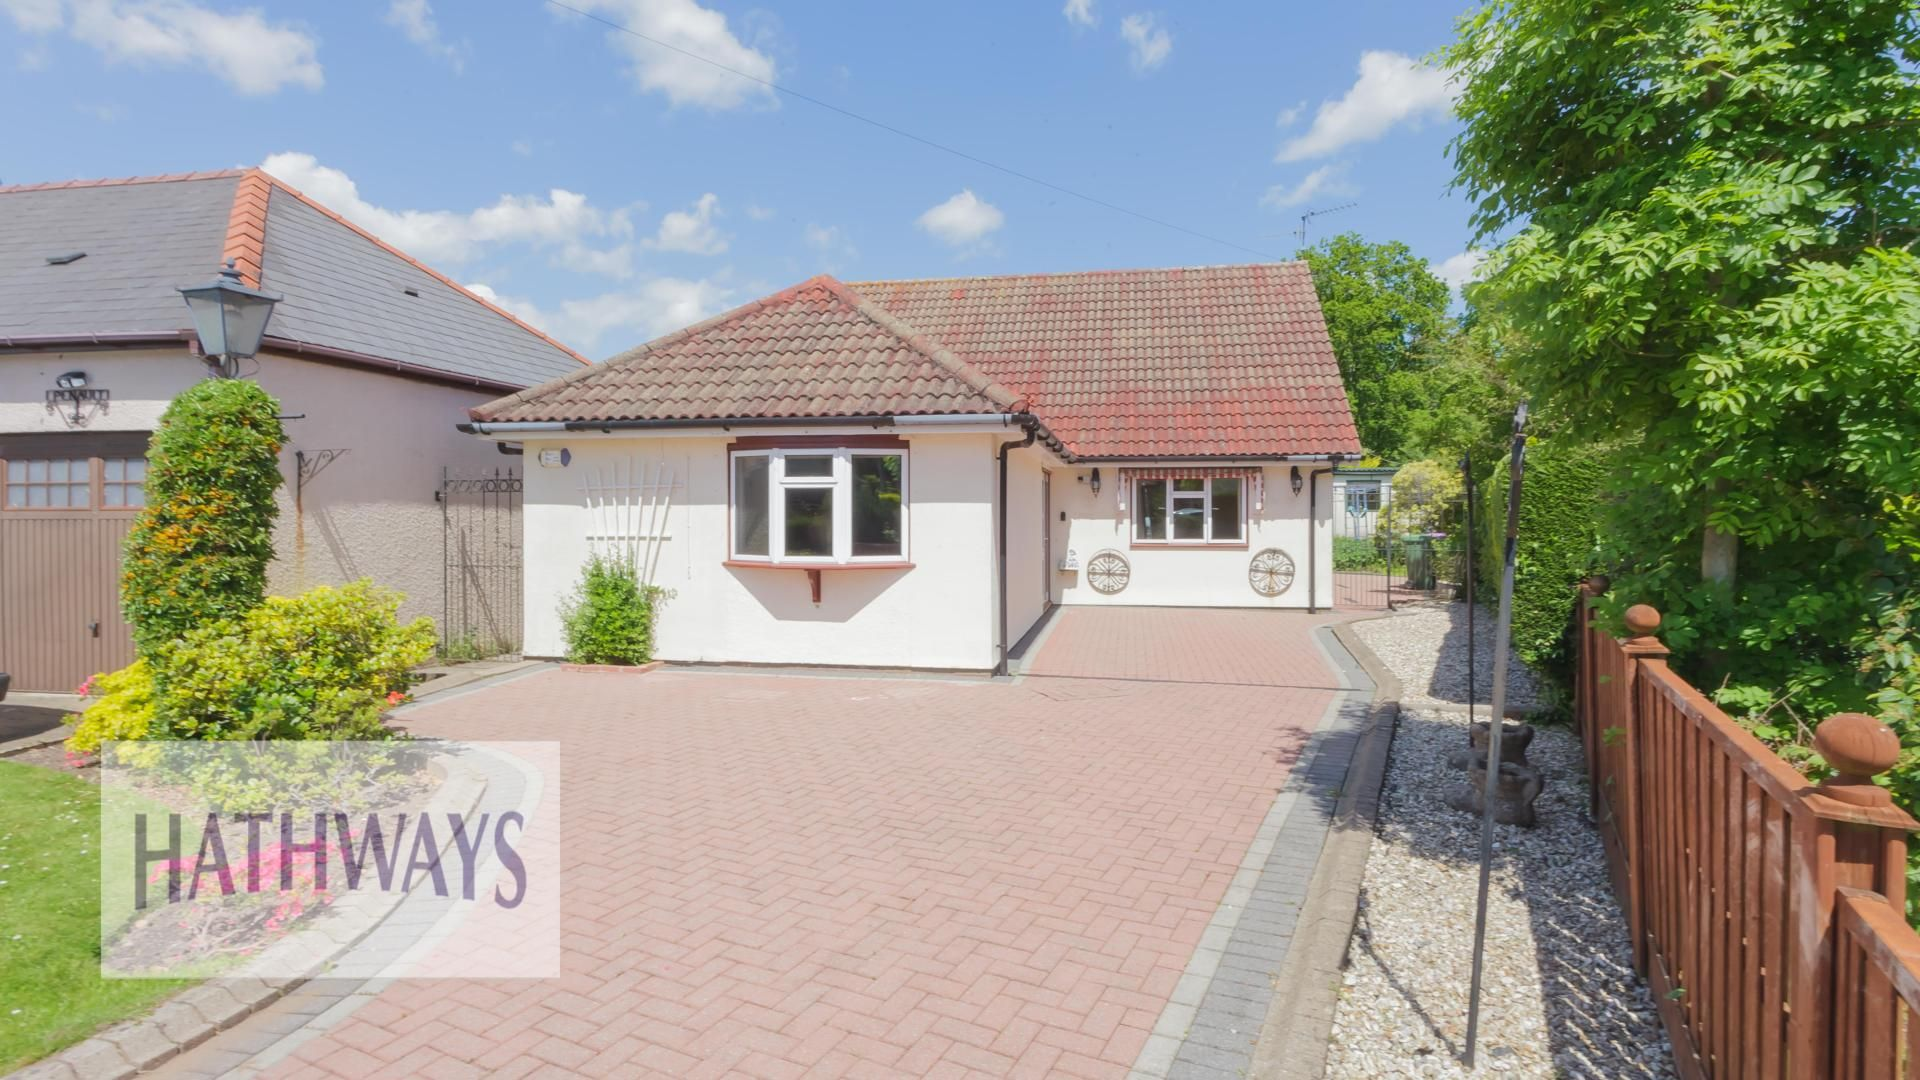 3 bed bungalow for sale in Ashford Close, NP44